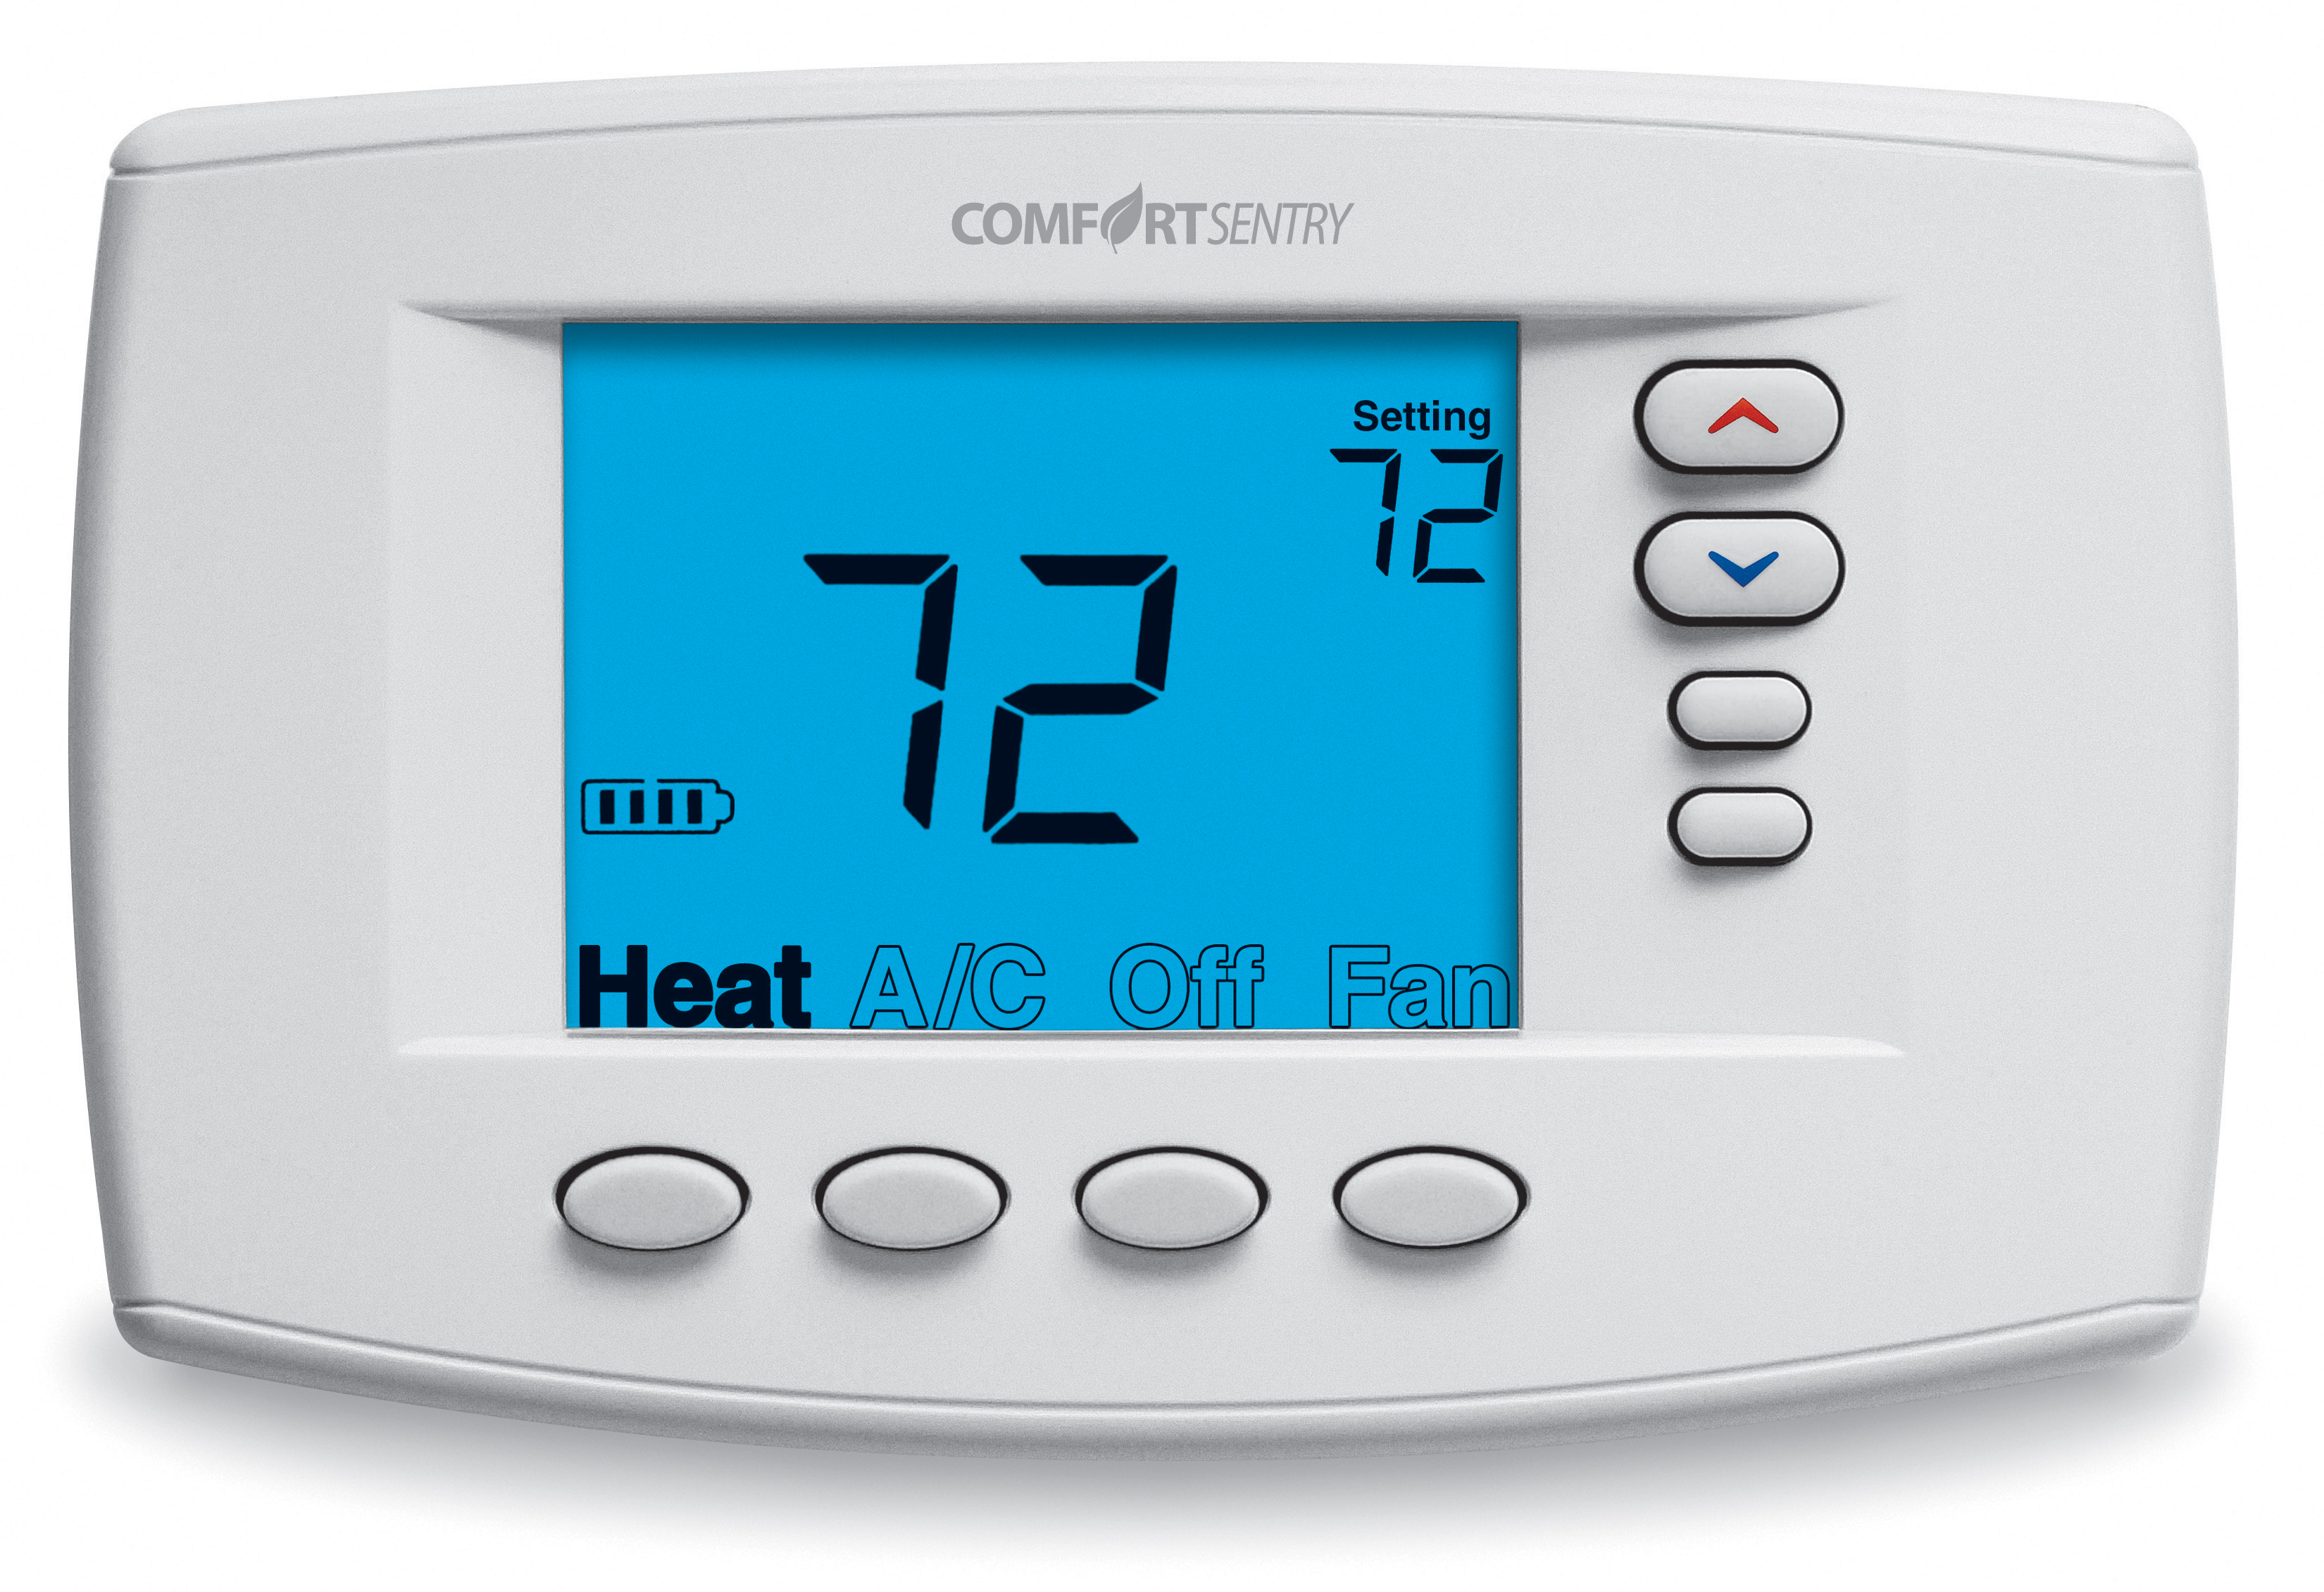 Honywell Focuspro Thermostat X in addition Emerson Room Thermostat F moreover Smart Thermostats And Climate Change also Thermostats Emerson Blueeasyreader F Ez together with Thickbox. on emerson programmable thermostat